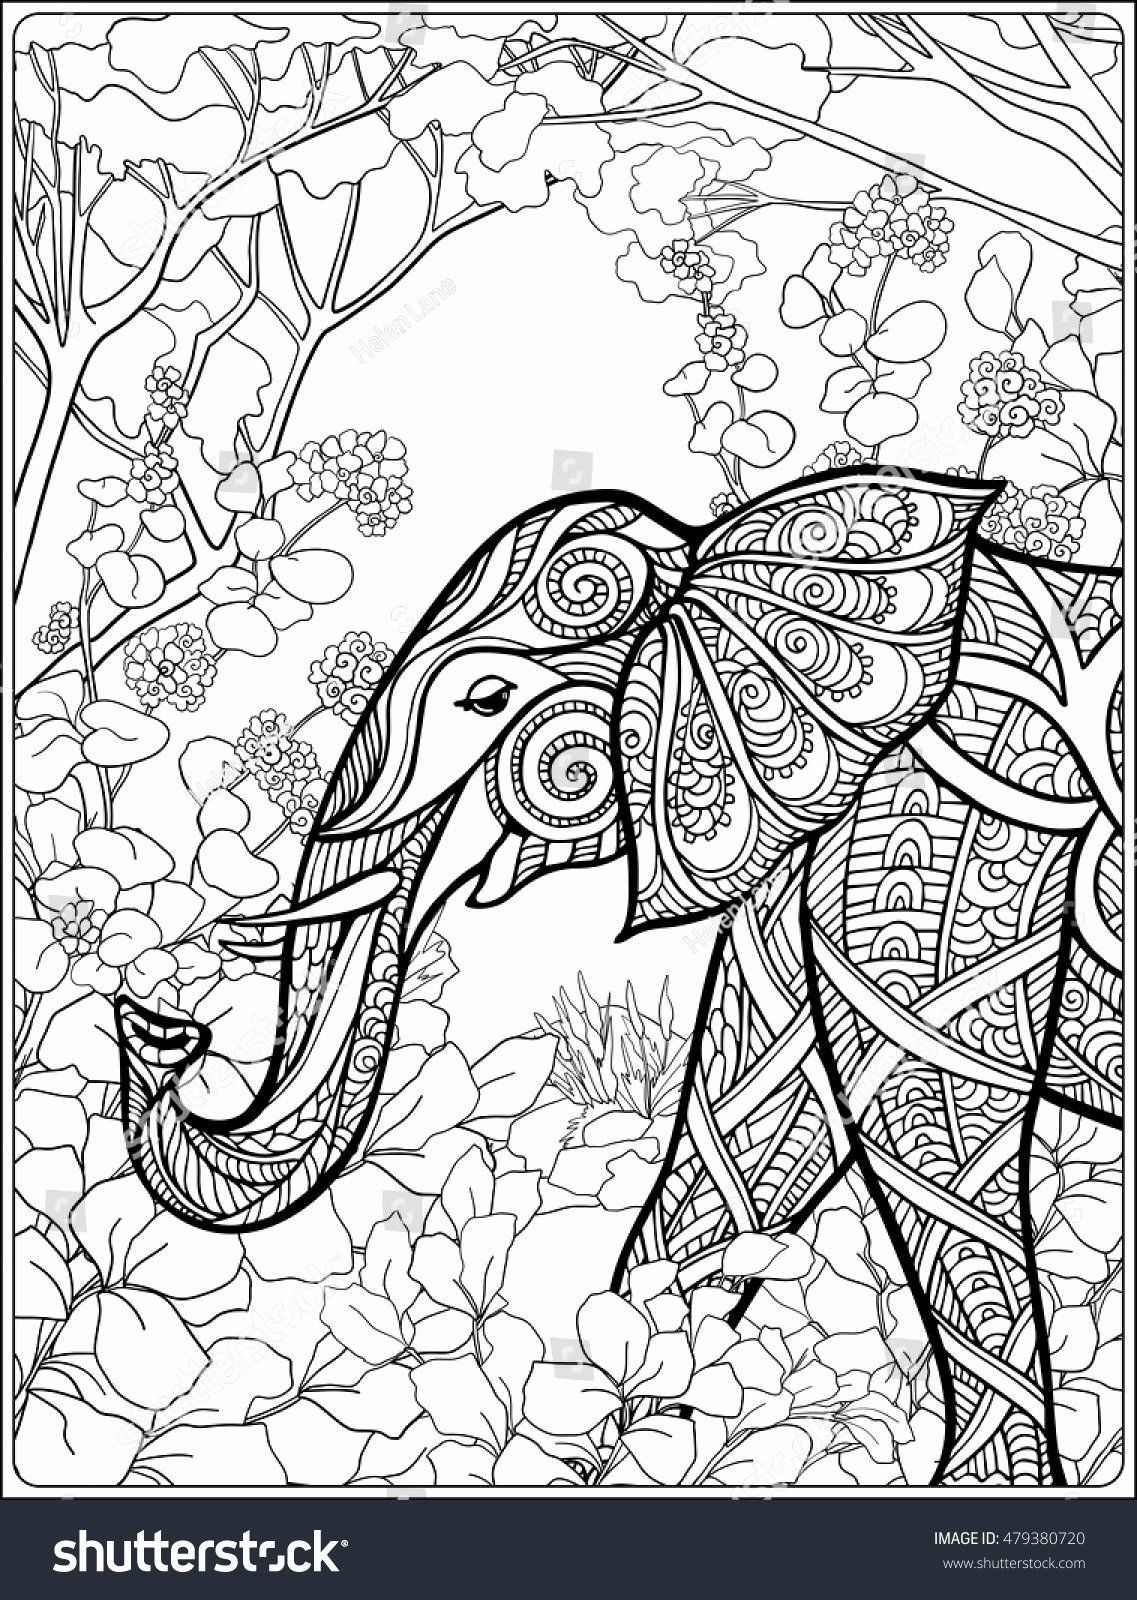 Coloring Pages For Elderly Adults Luxury 1000 Images About Coloring Pages To Print Elephant On Elephant Coloring Page Cat Coloring Page Coloring Books